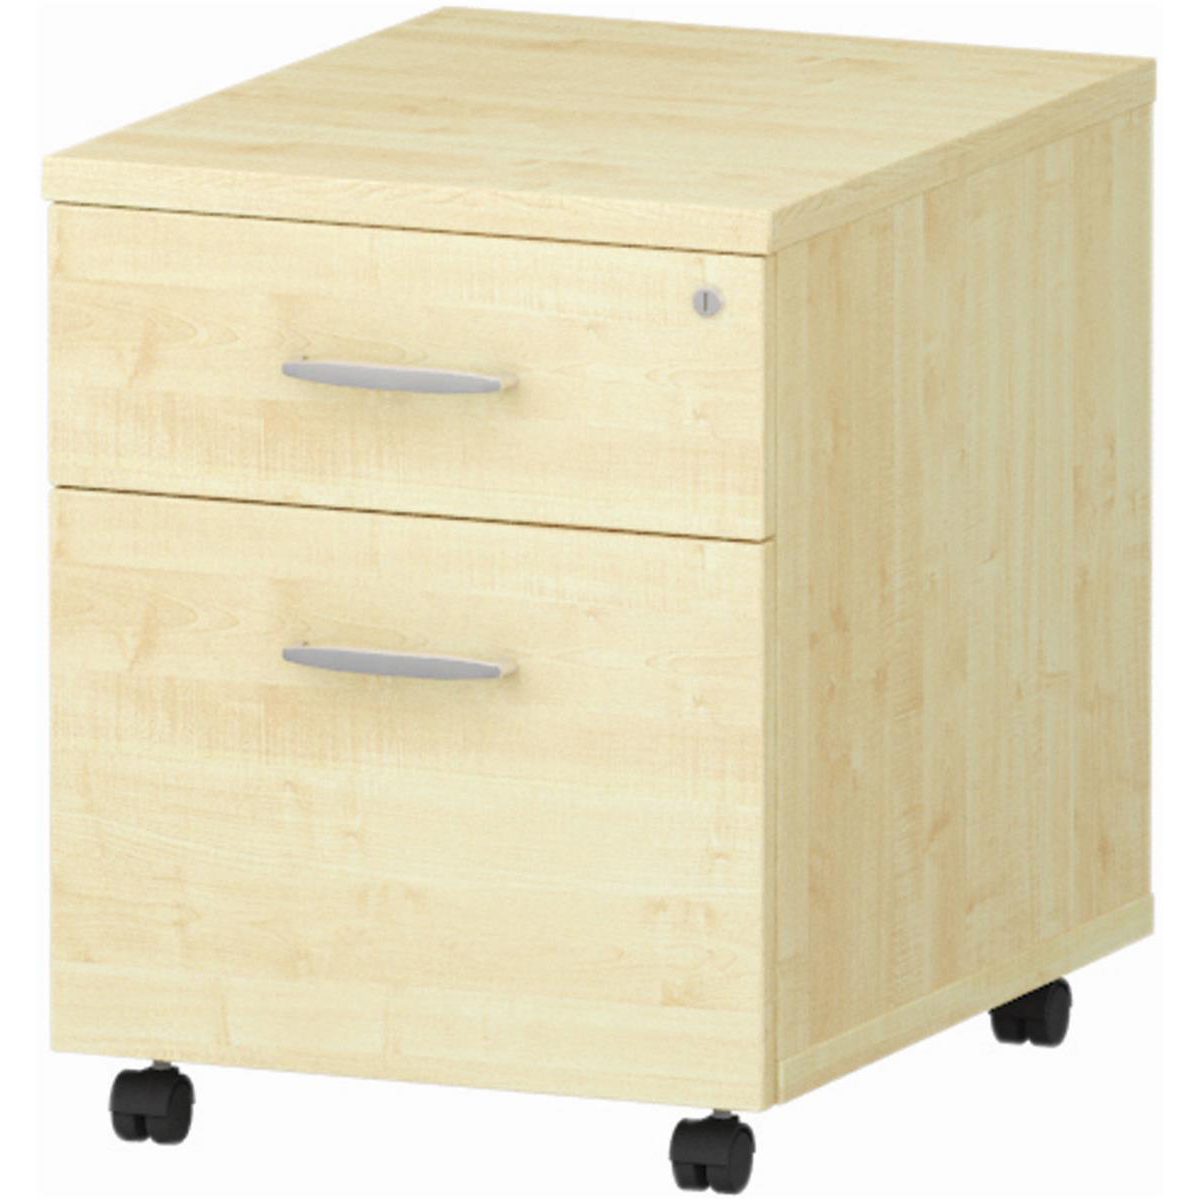 Image for Trexus 2 Drawer Mobile Pedestal 430x500x510mm Maple Ref I000244